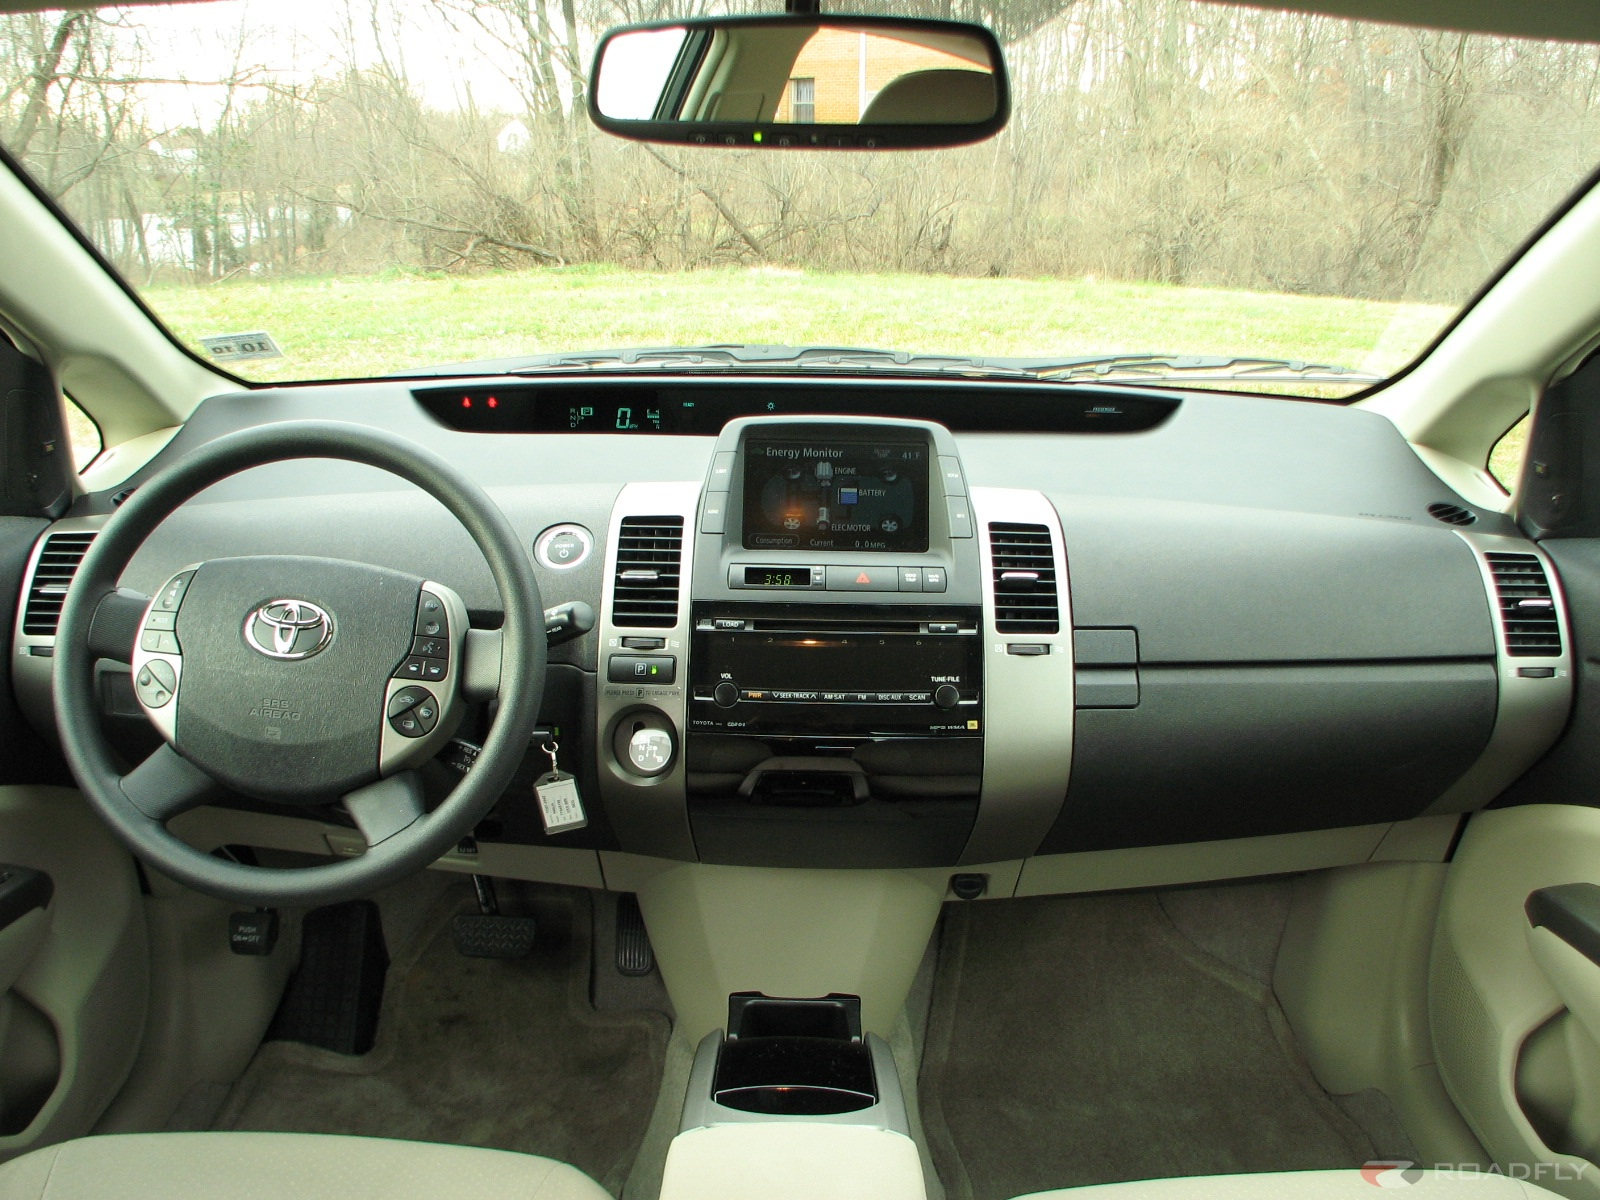 2007 Toyota Prius Information And Photos Zombiedrive